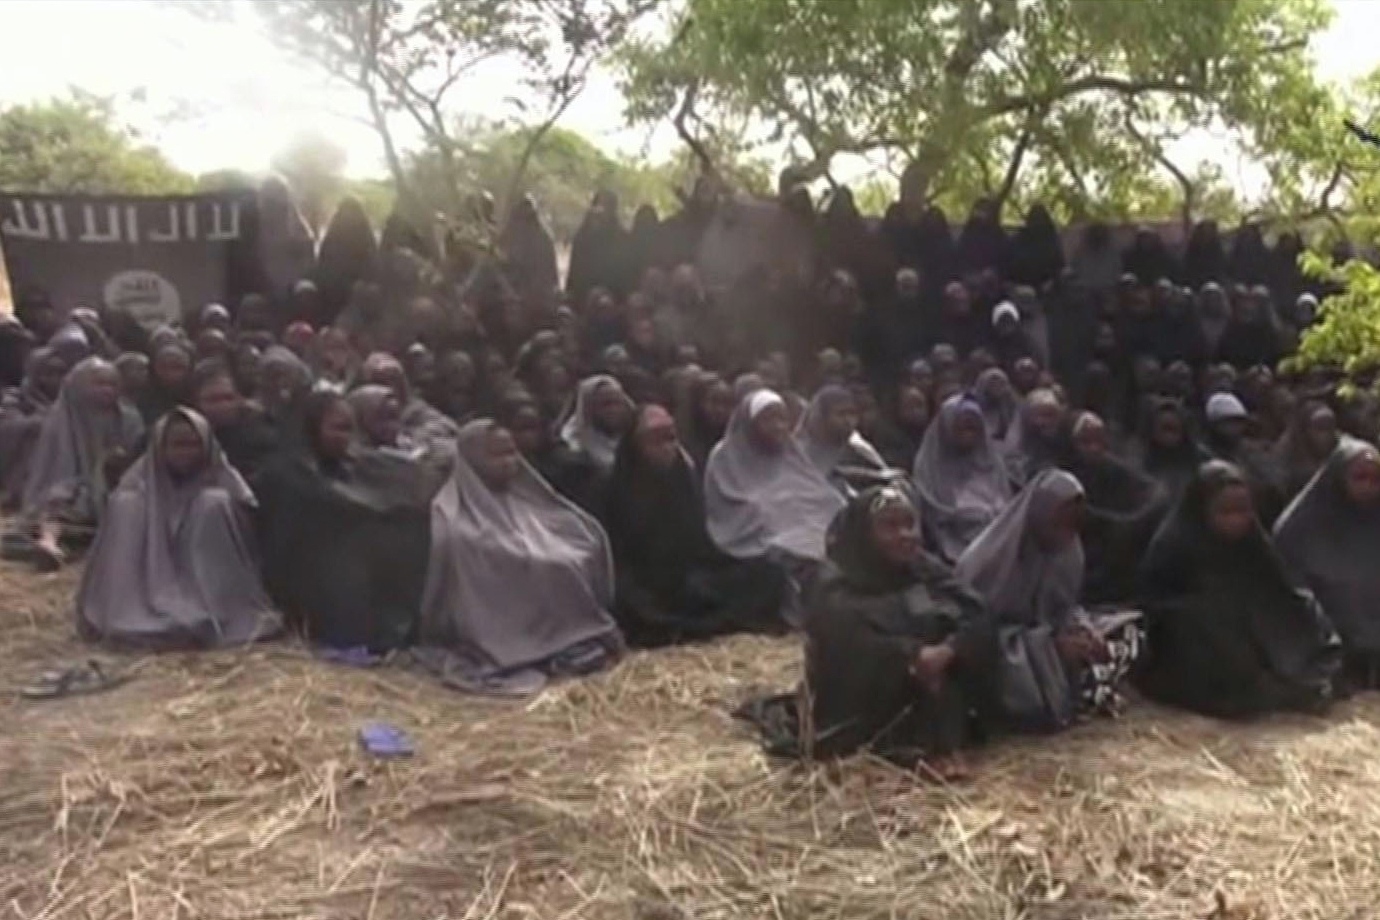 A 2014 image of the alleged missing girls abducted from Chibok, Nigeria, from a video by Nigeria's Islamic extremist network